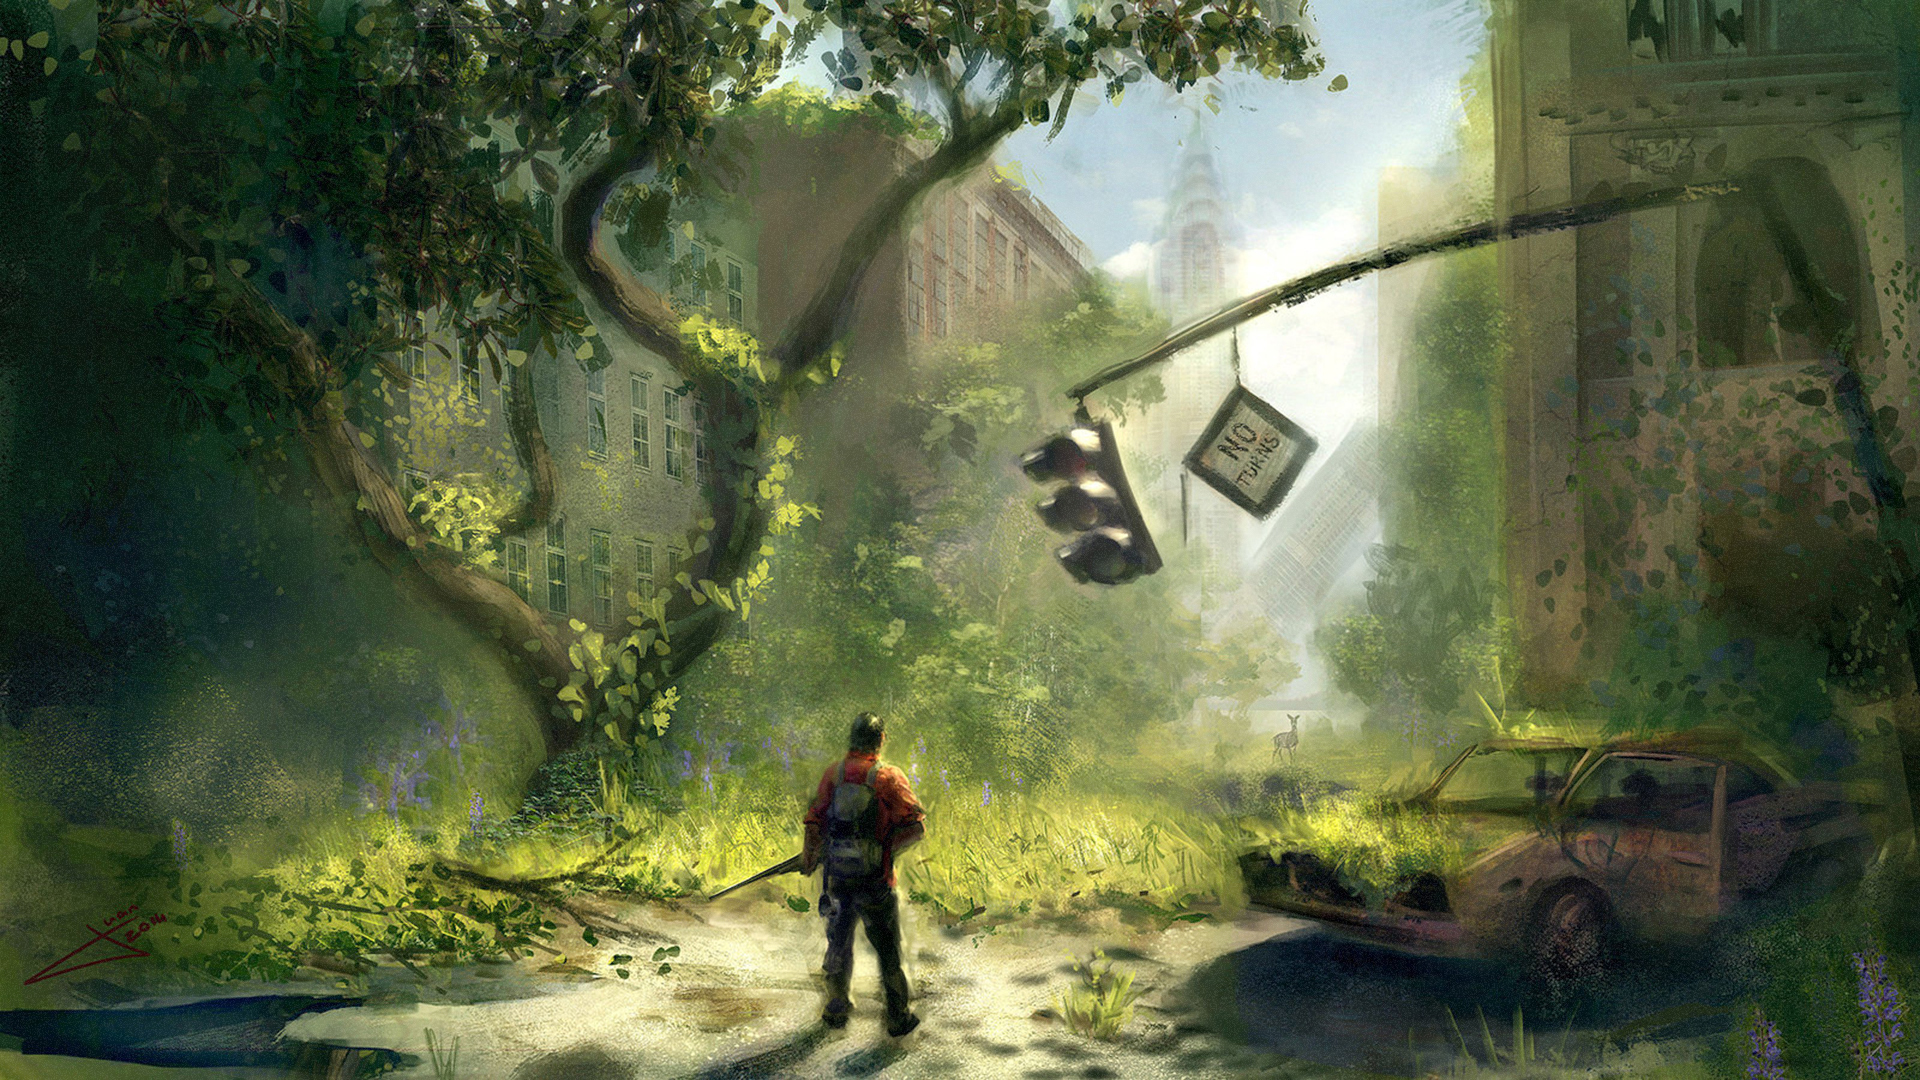 The last of us hd wallpaper background image 1920x1080 id 713178 wallpaper abyss - The last of us wallpaper ...